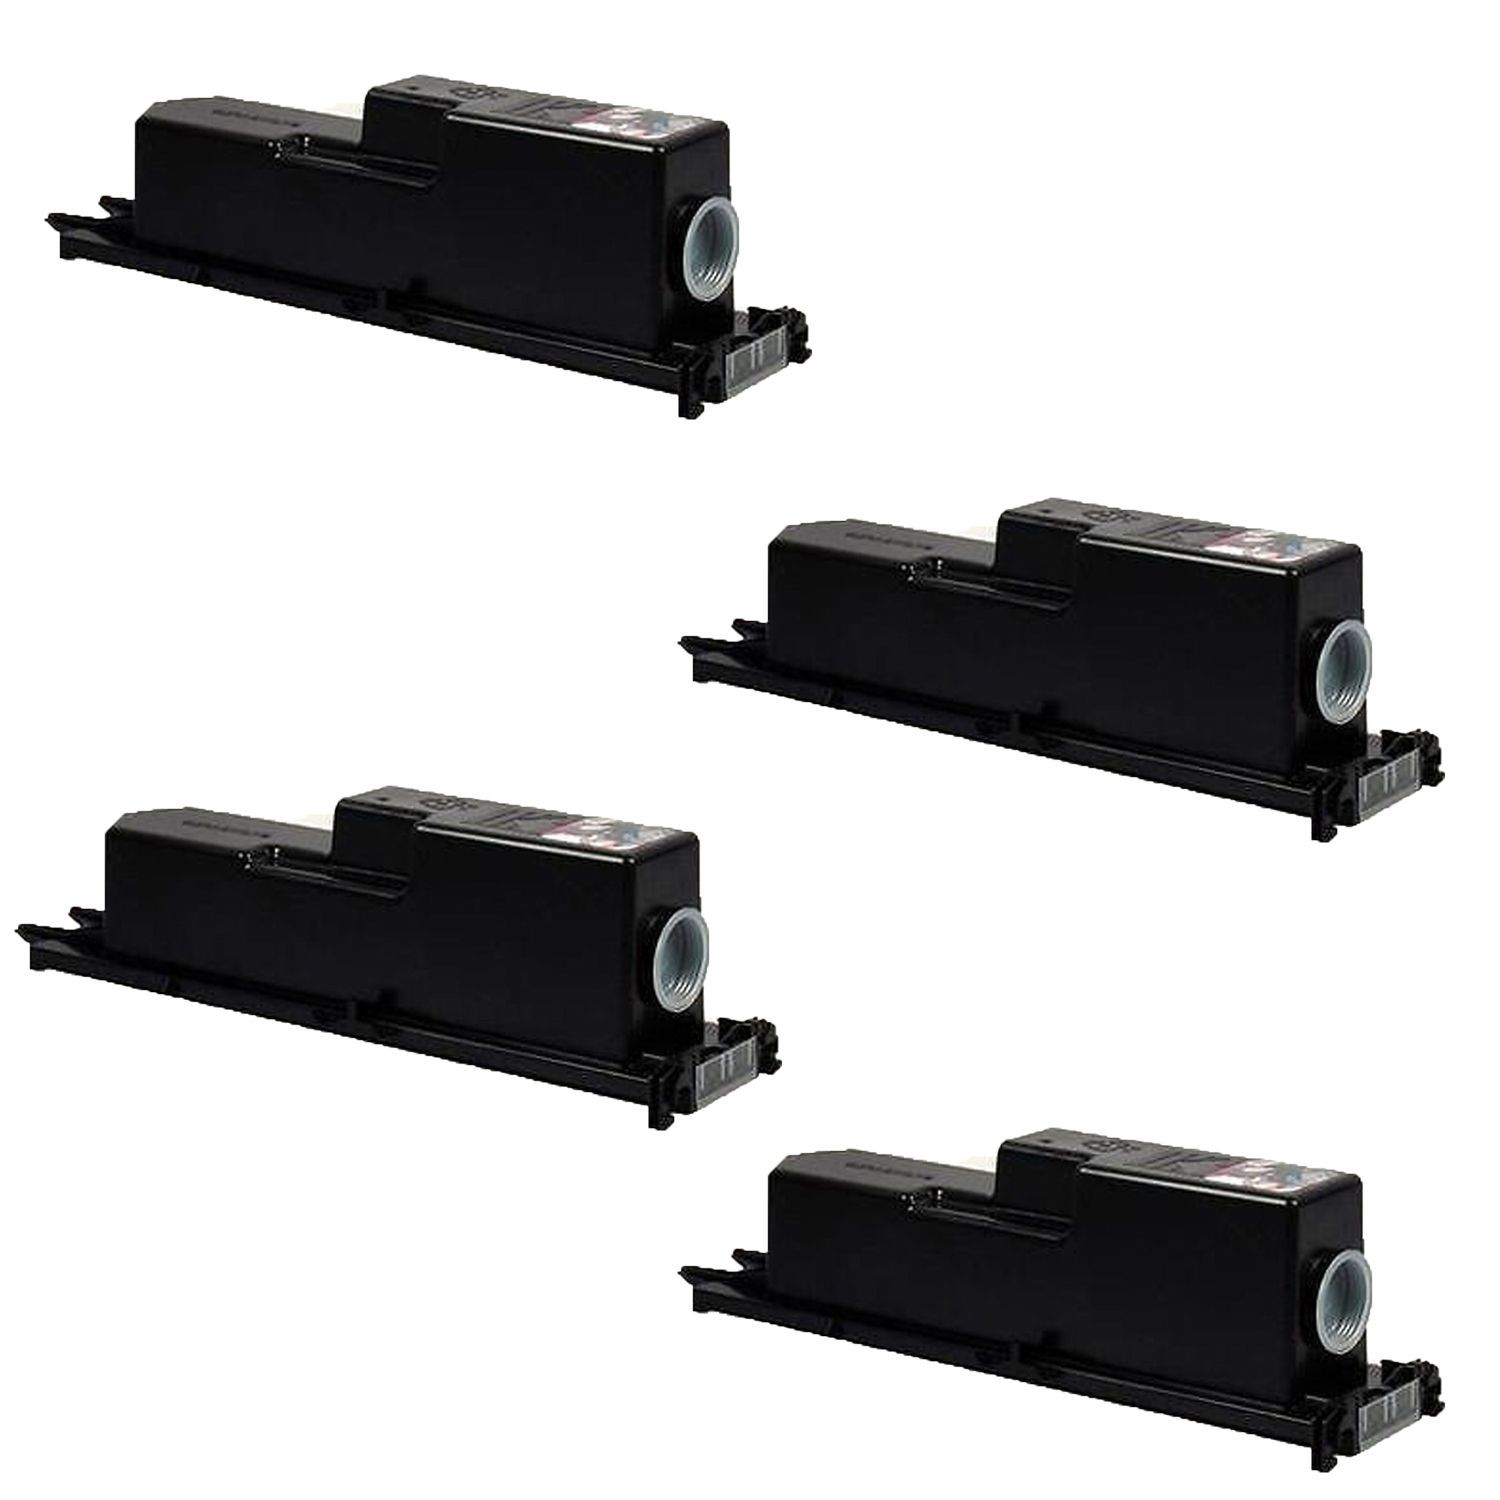 N 4PK Compatible GPR2 1389A004AA Toner Cartridge For Canon imageRUNNER 300 330N 330S 400 GP 200 200F 210 210S